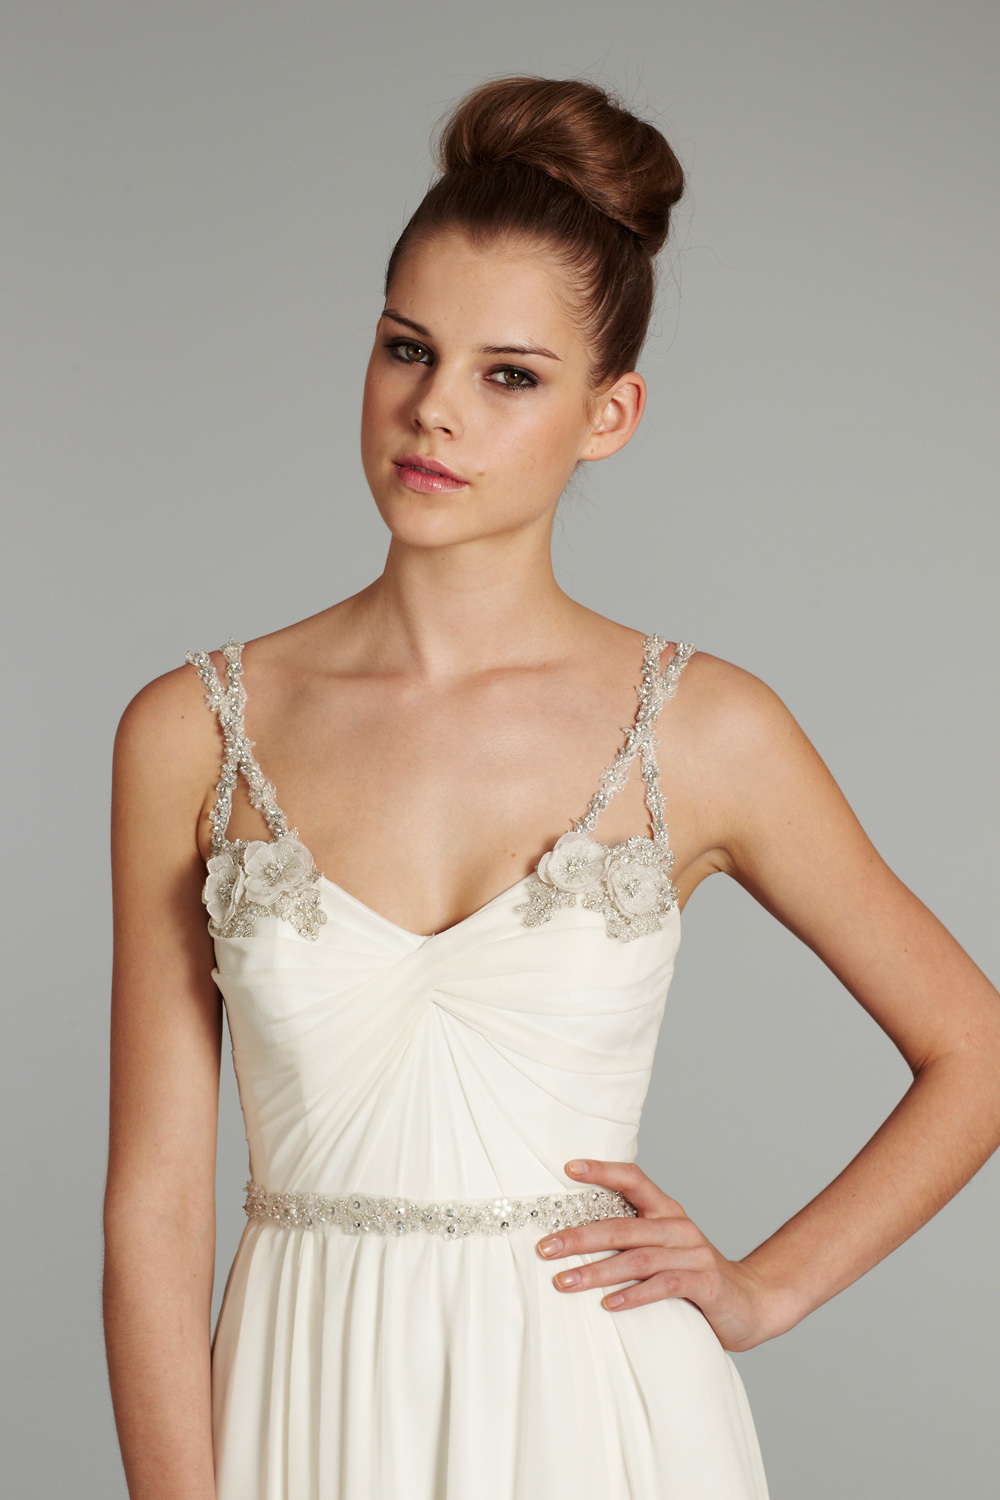 Bridal-gown-wedding-dress-jlm-hayley-paige-fall-2012-nina-detail.full